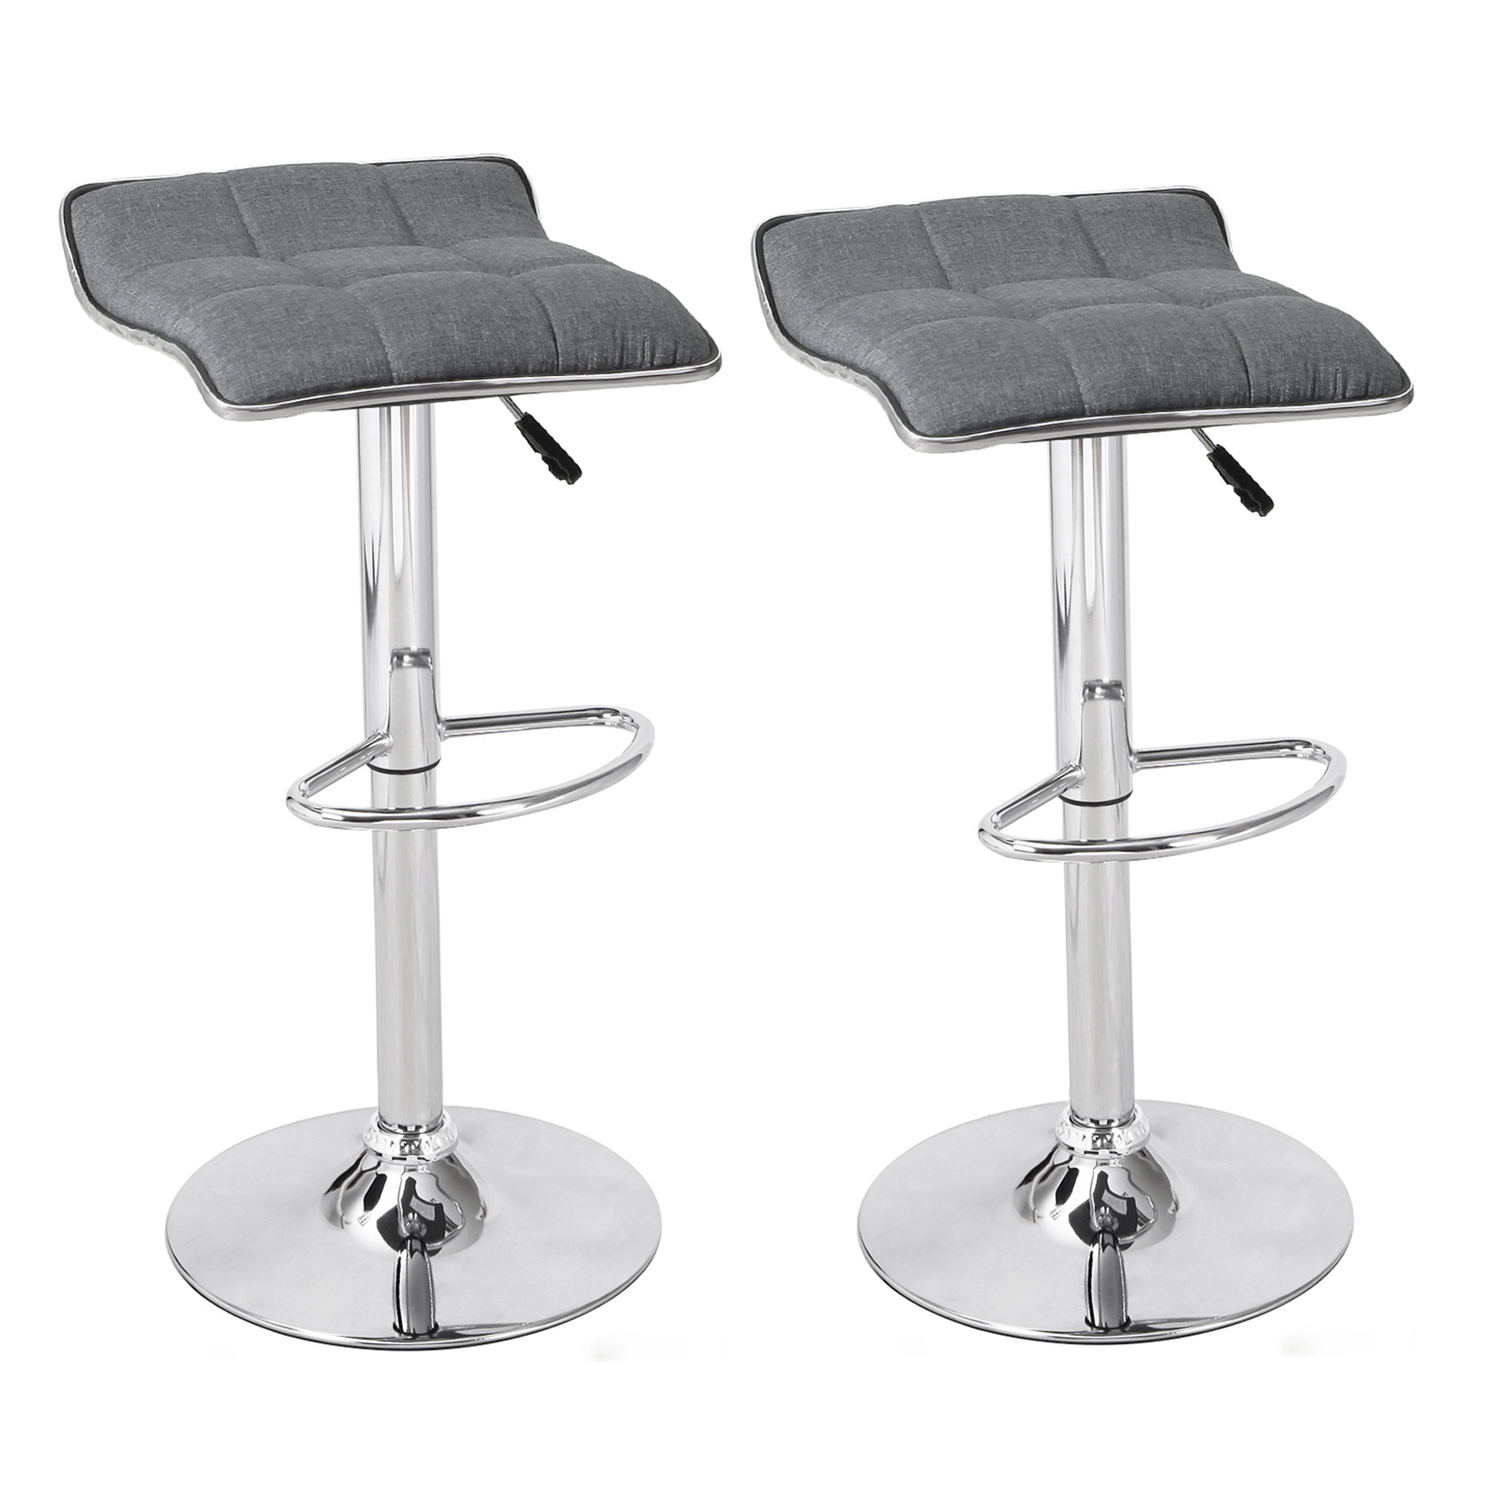 Swell Decenthome Grey Fabric Backless Adjustable Bar Stools Set Of 2 Ch0292 Machost Co Dining Chair Design Ideas Machostcouk